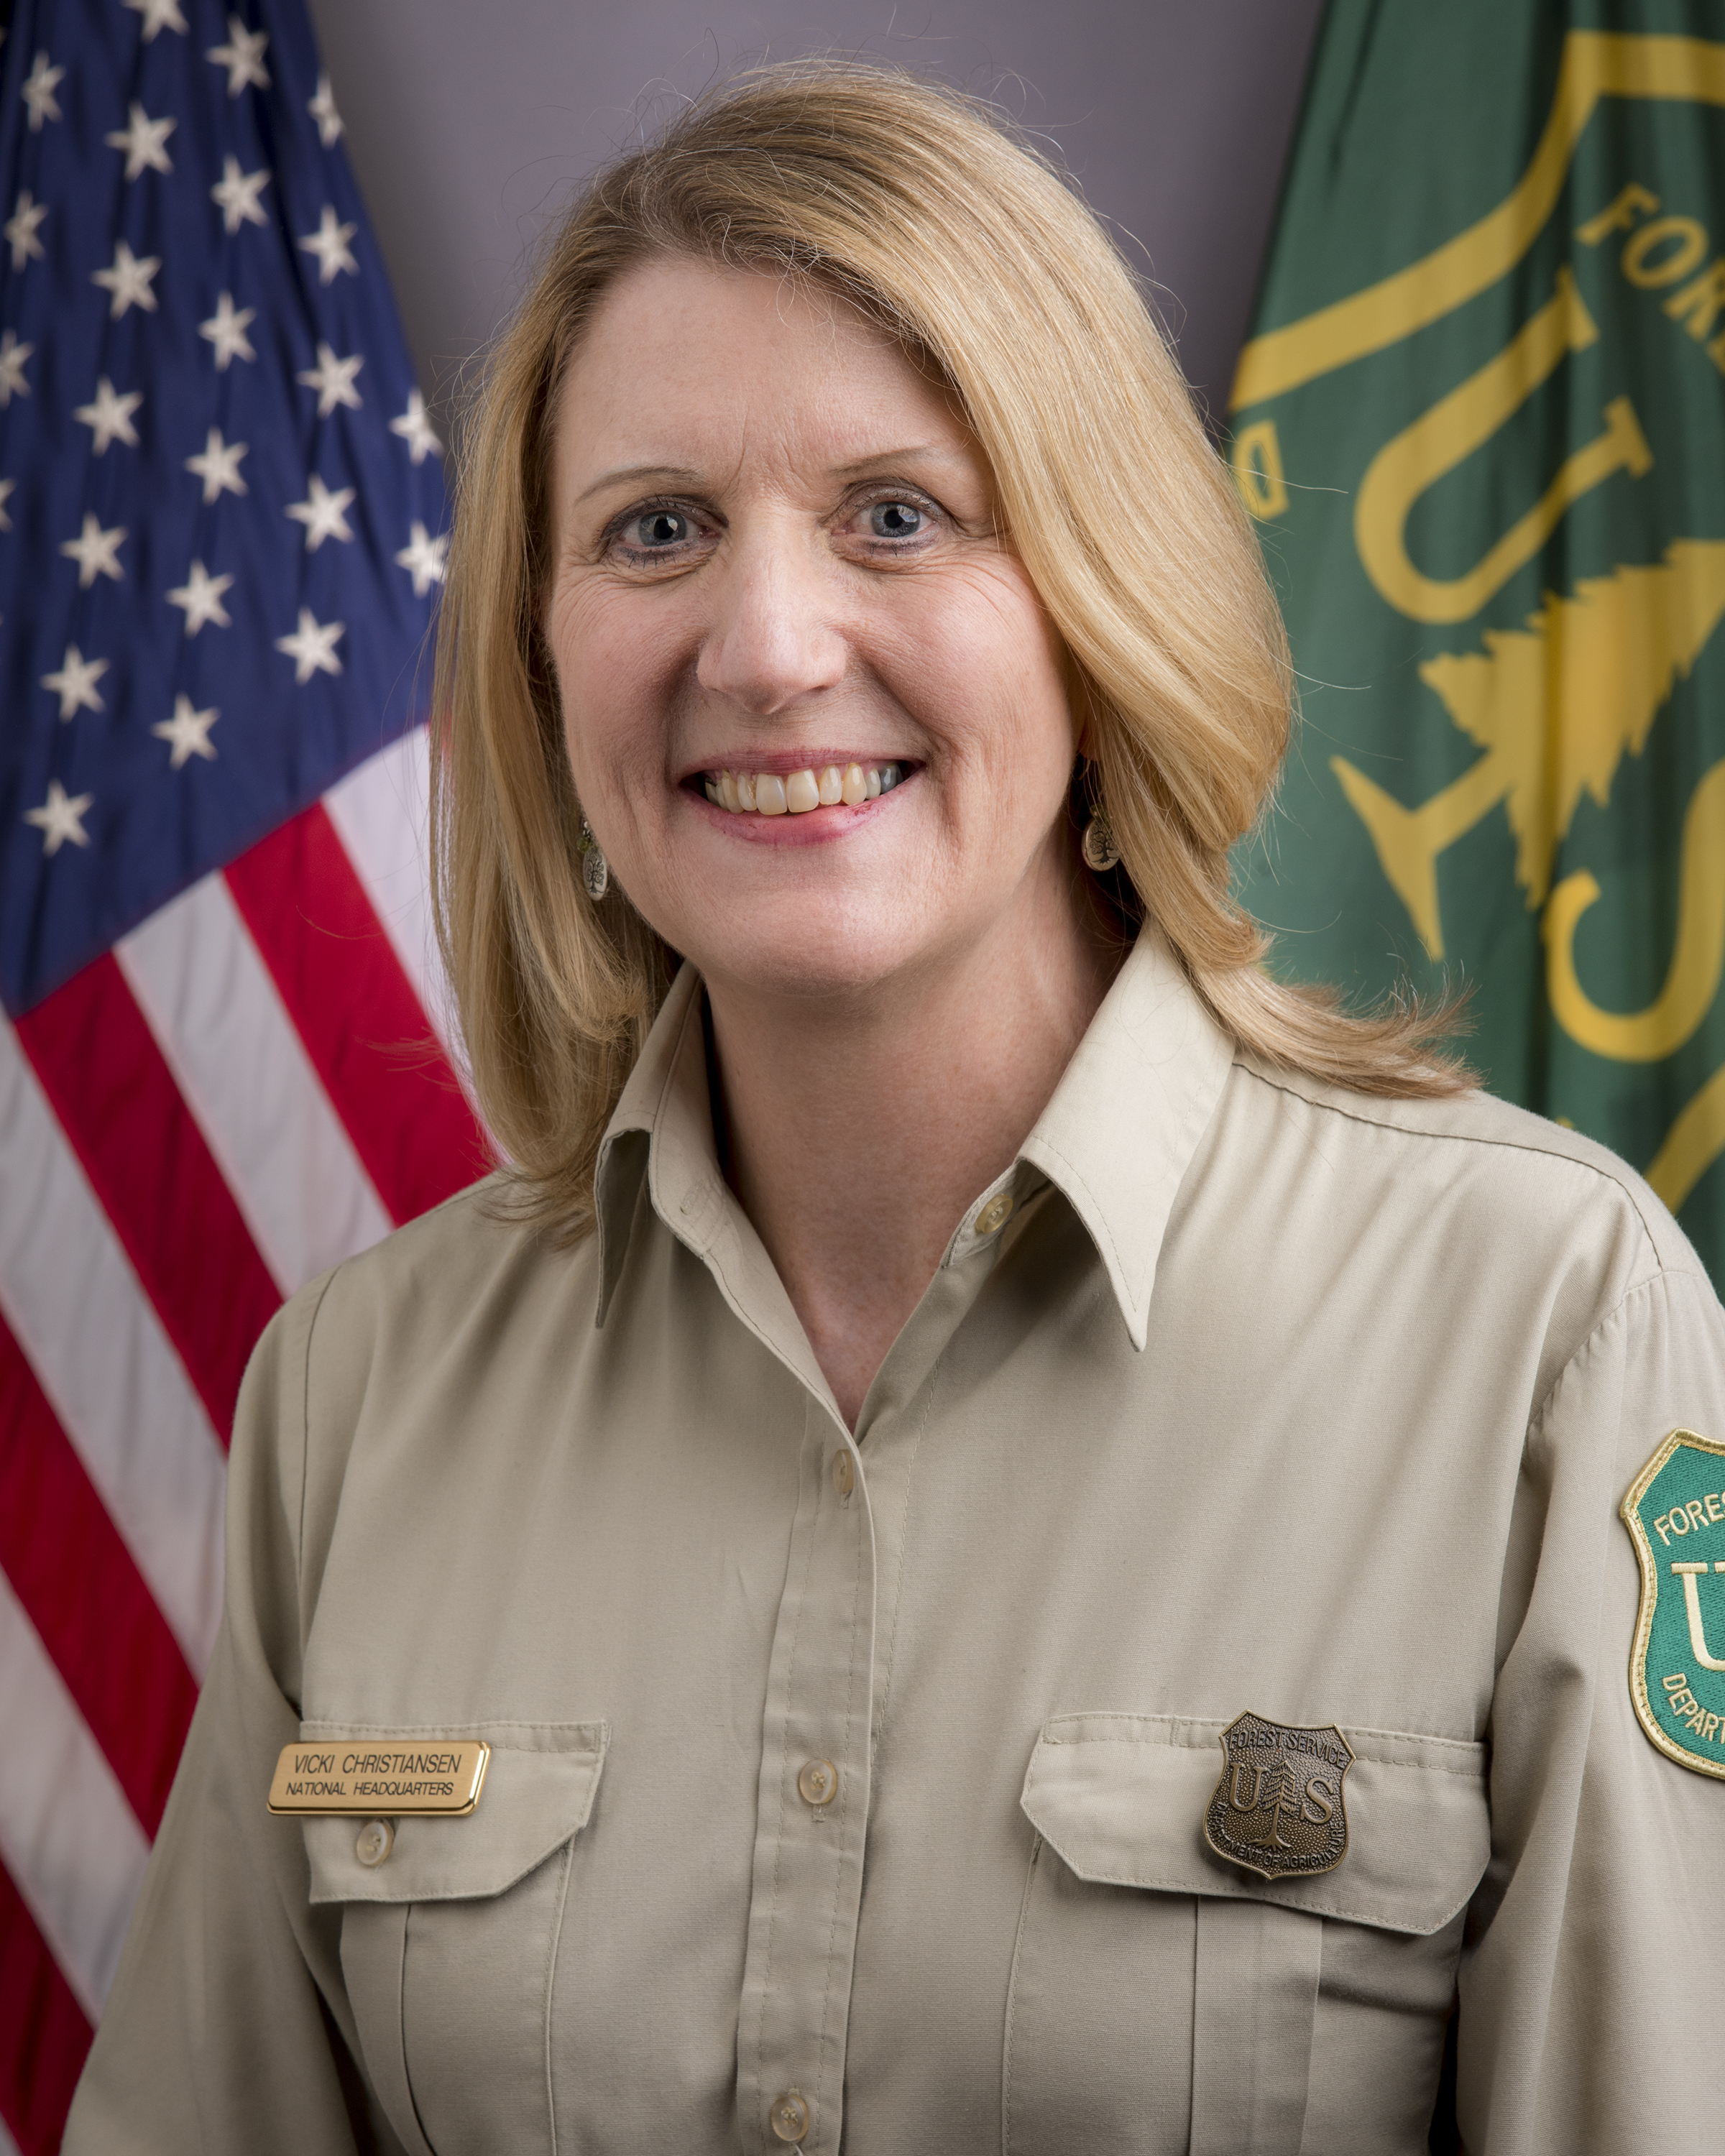 Photo: Official portrait of Vicki Christiansen.